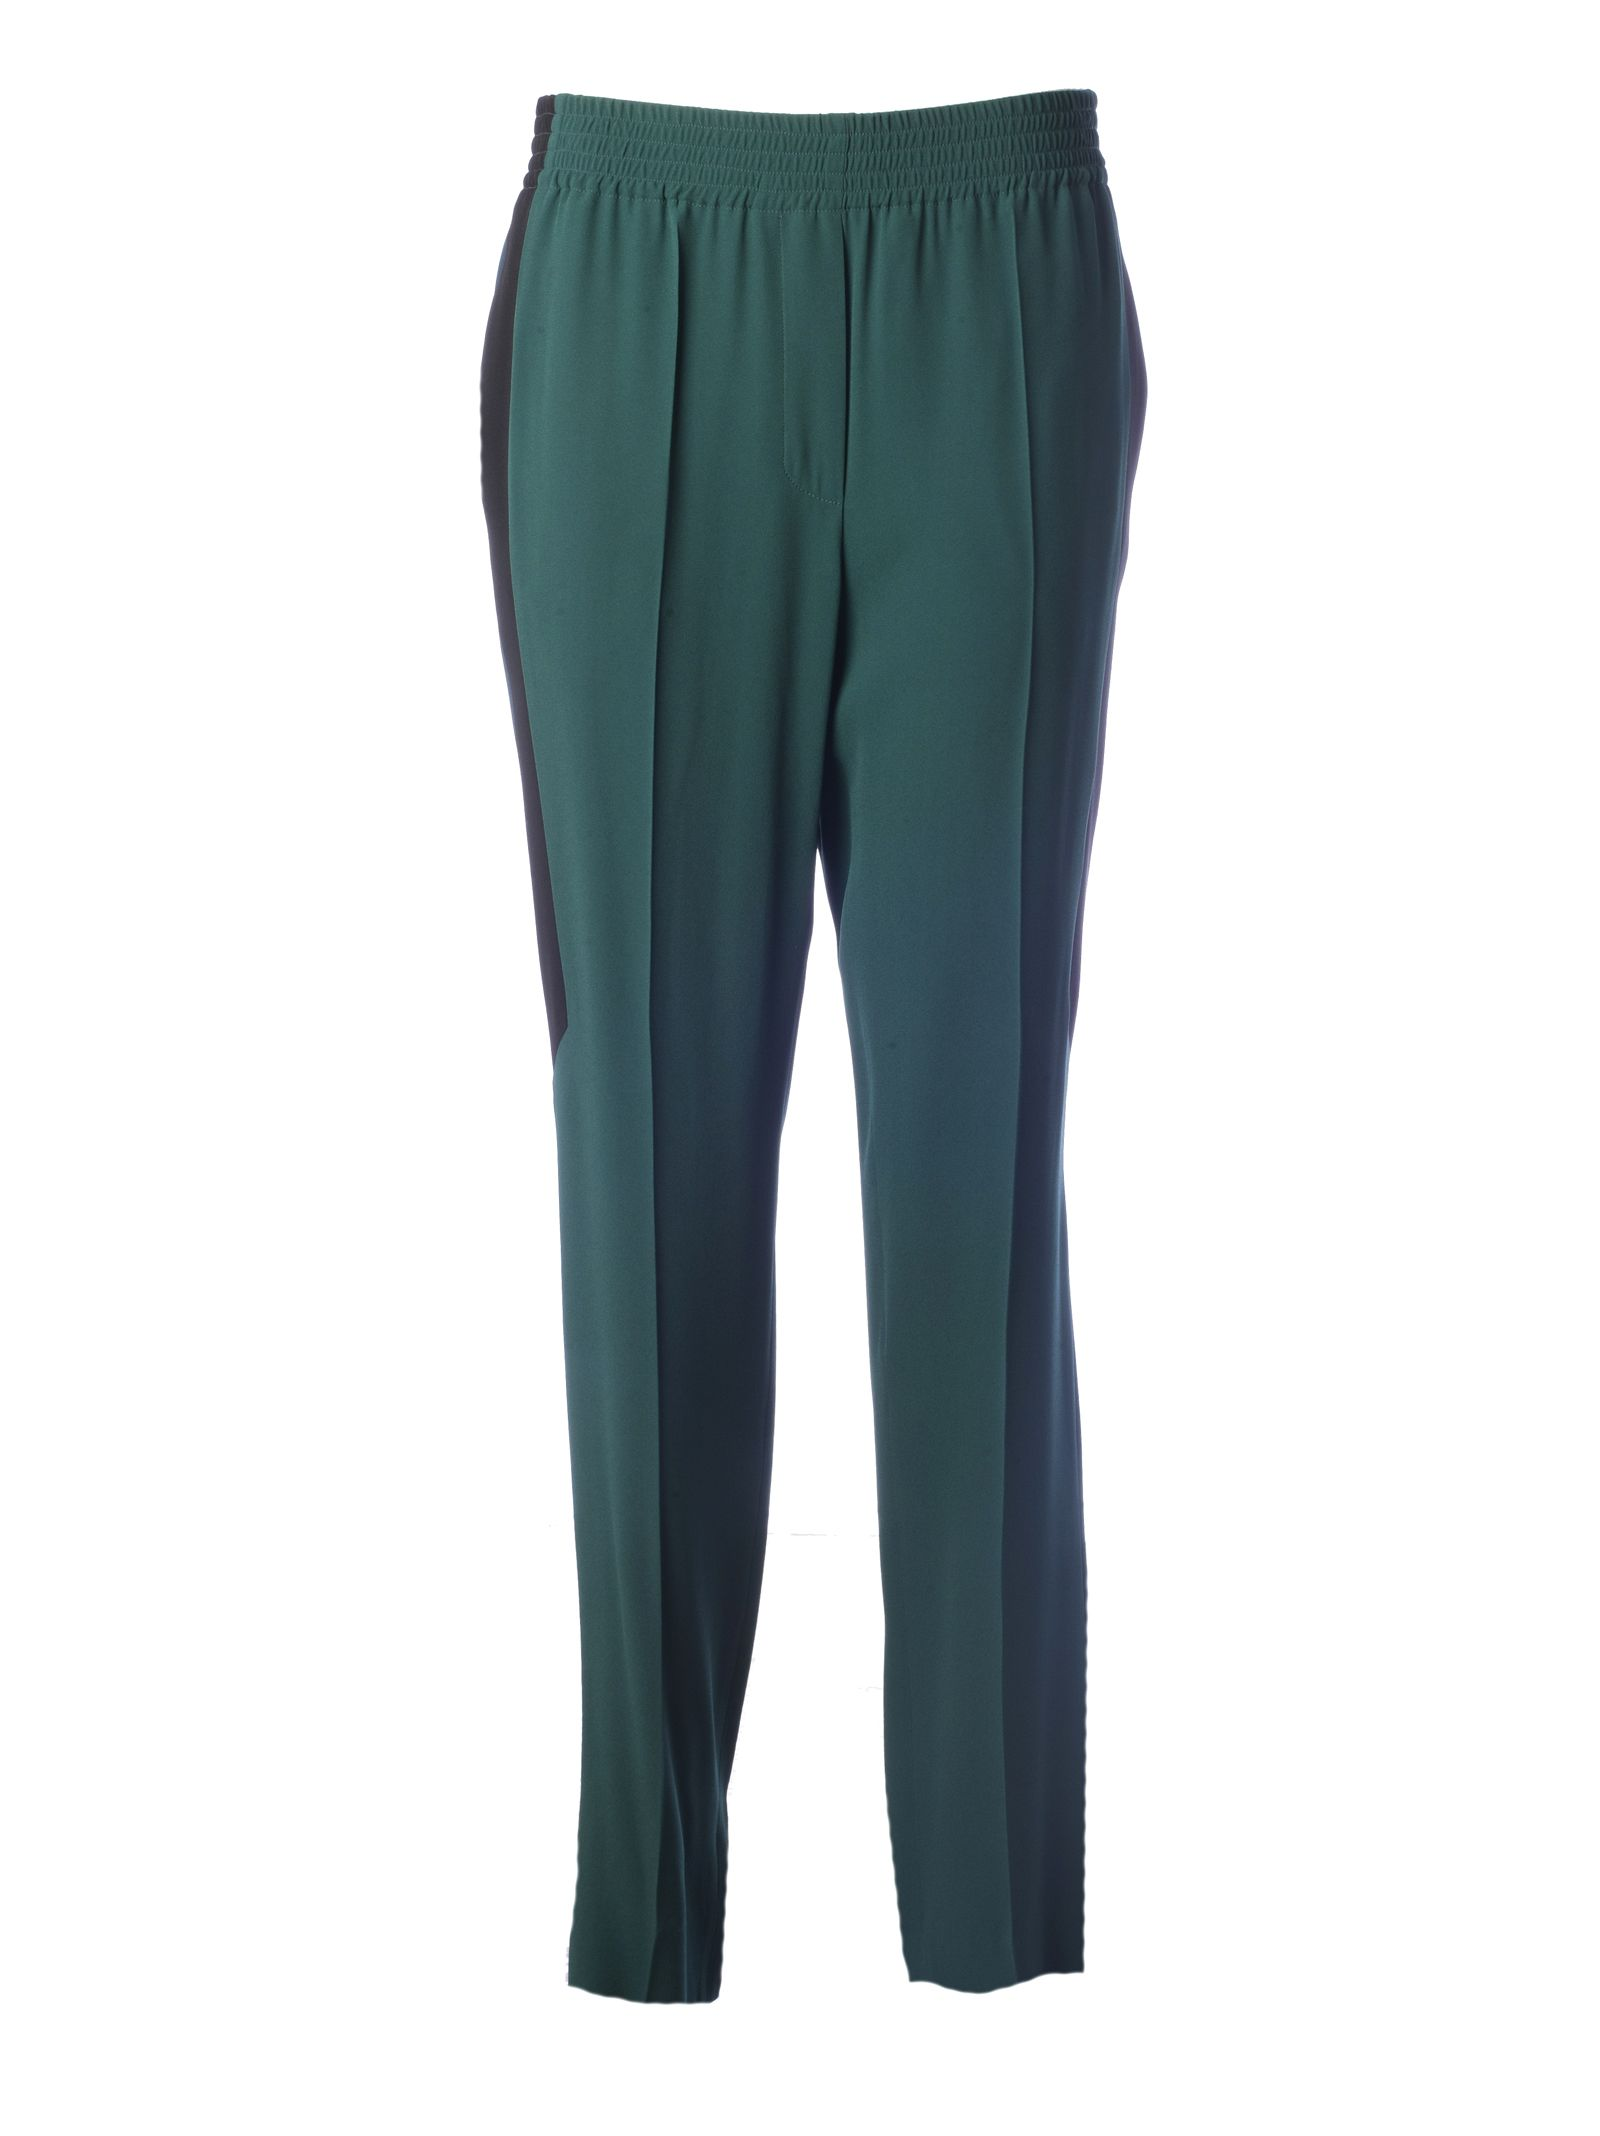 329dc59ad7de Givenchy Givenchy Striped Detail Trousers - Green Forest - 10794904 ...